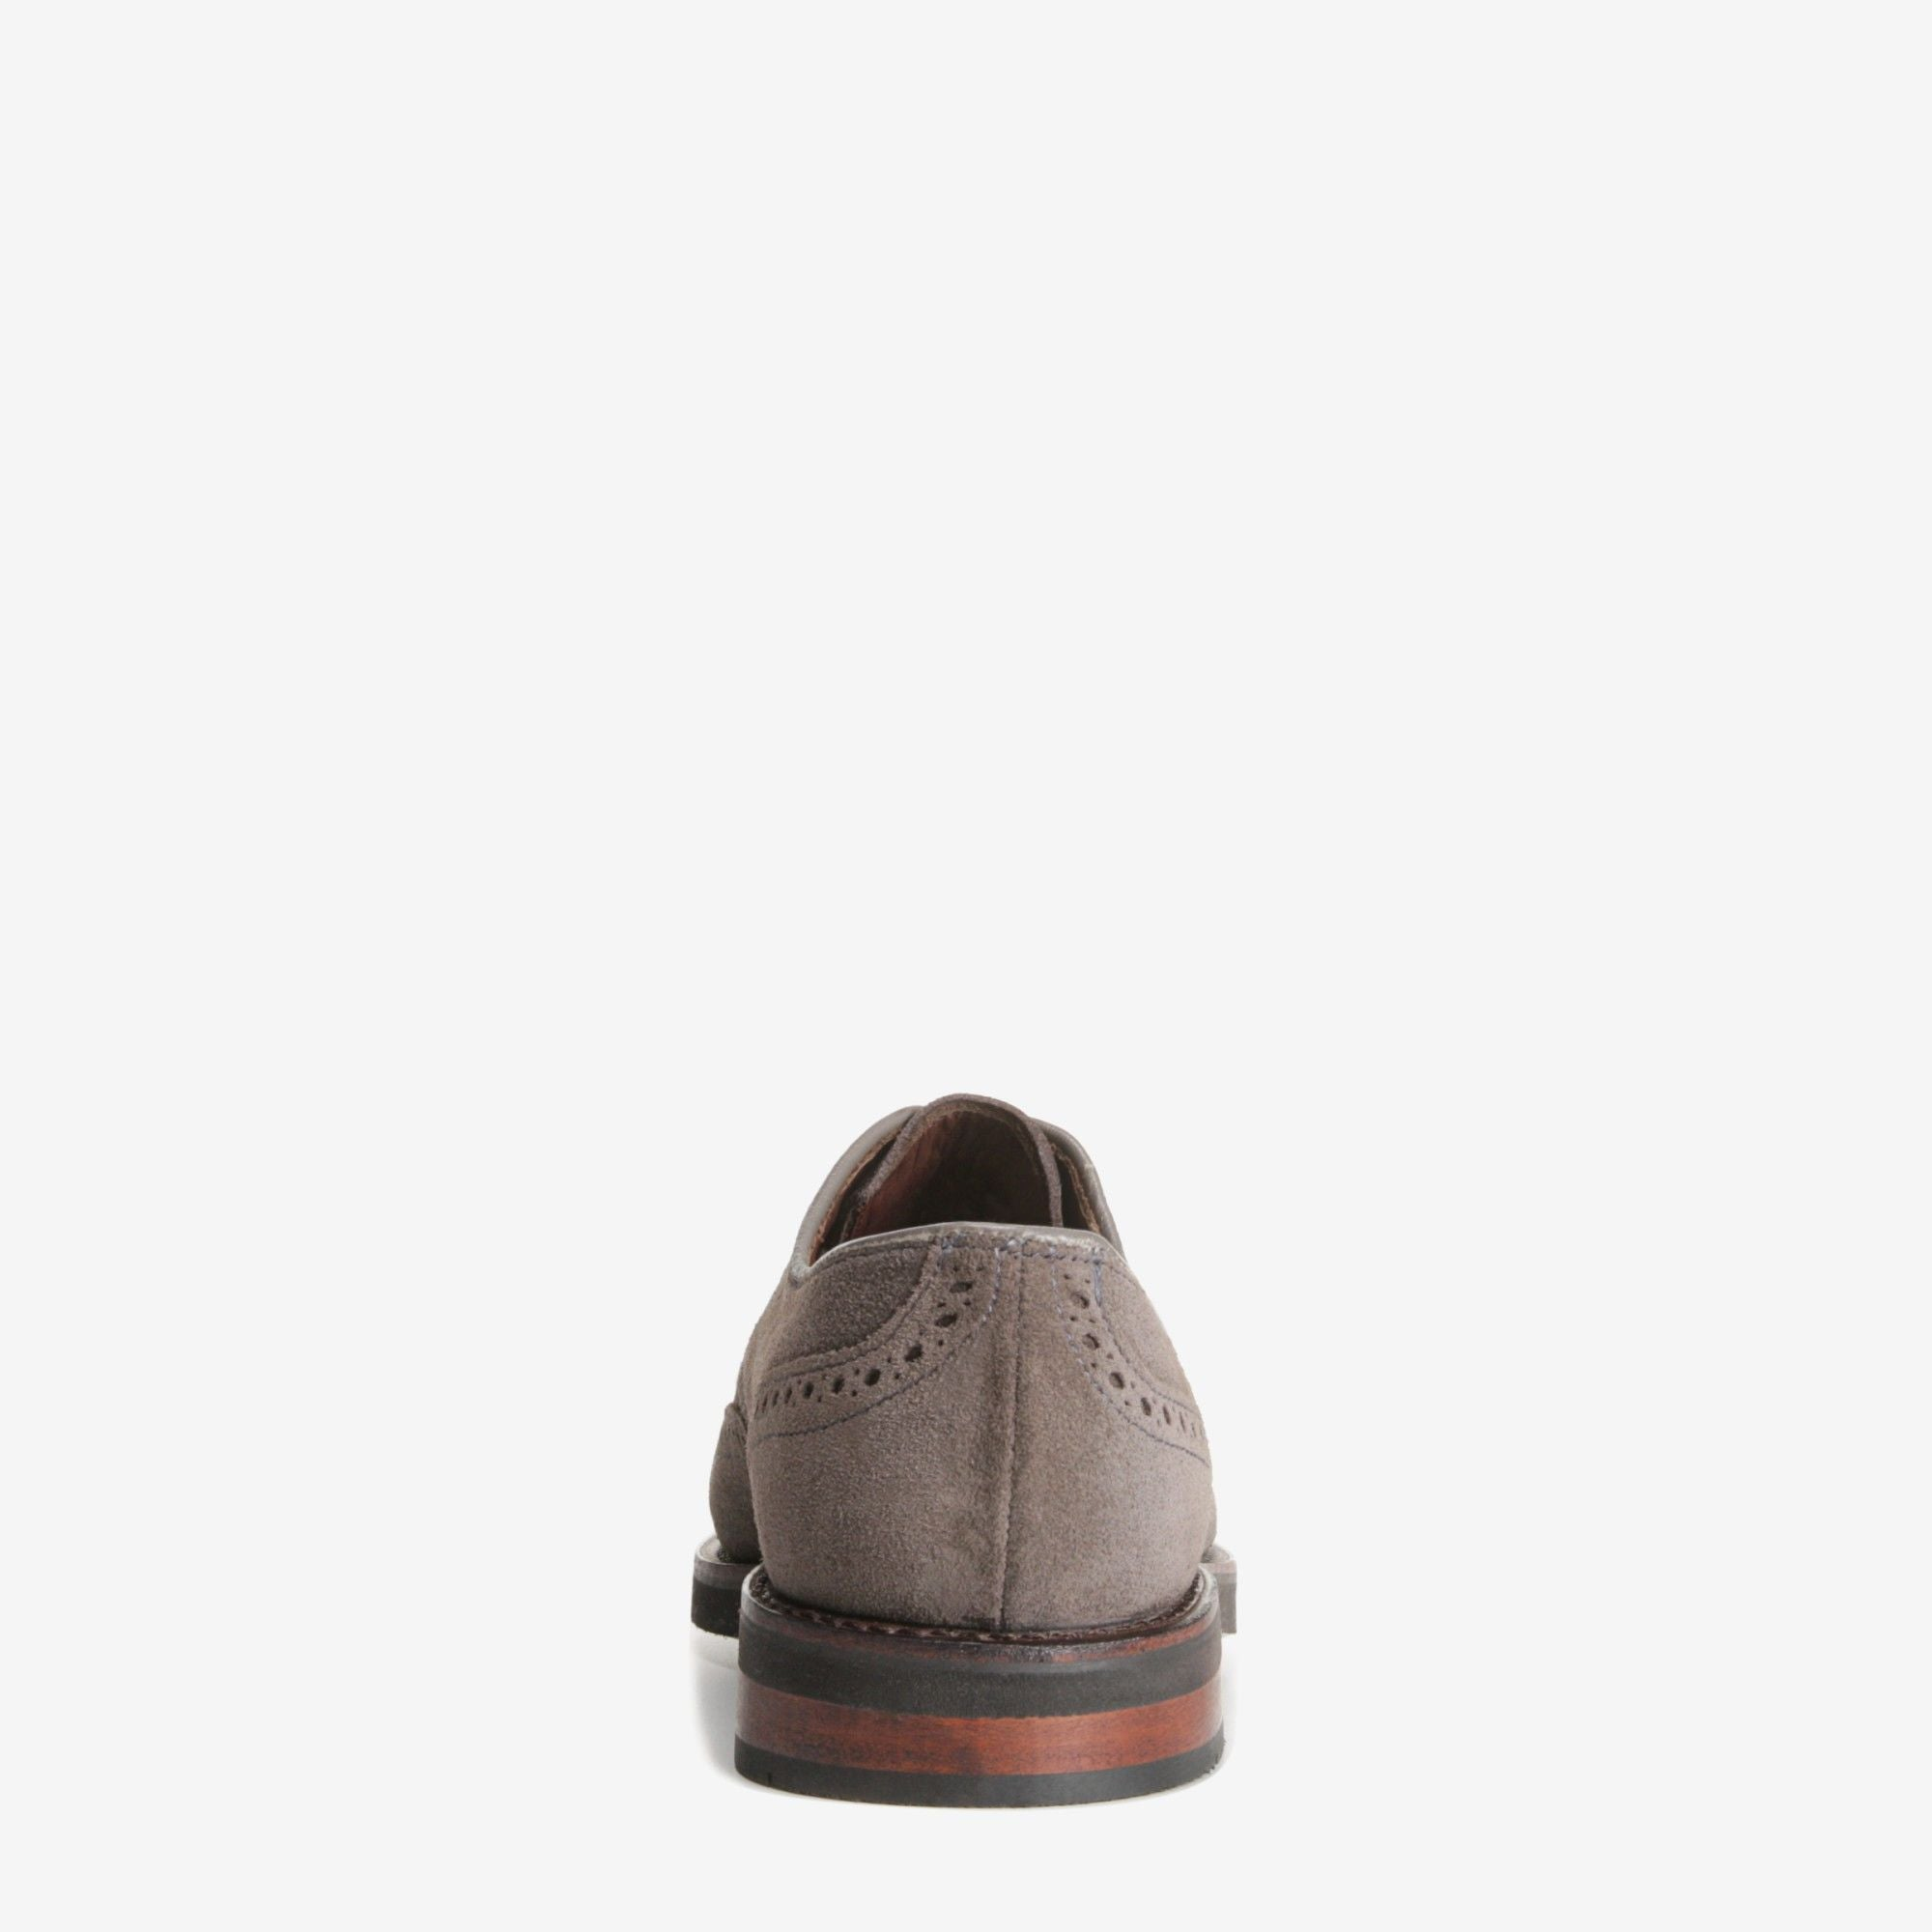 Nomad Suede Short Wing